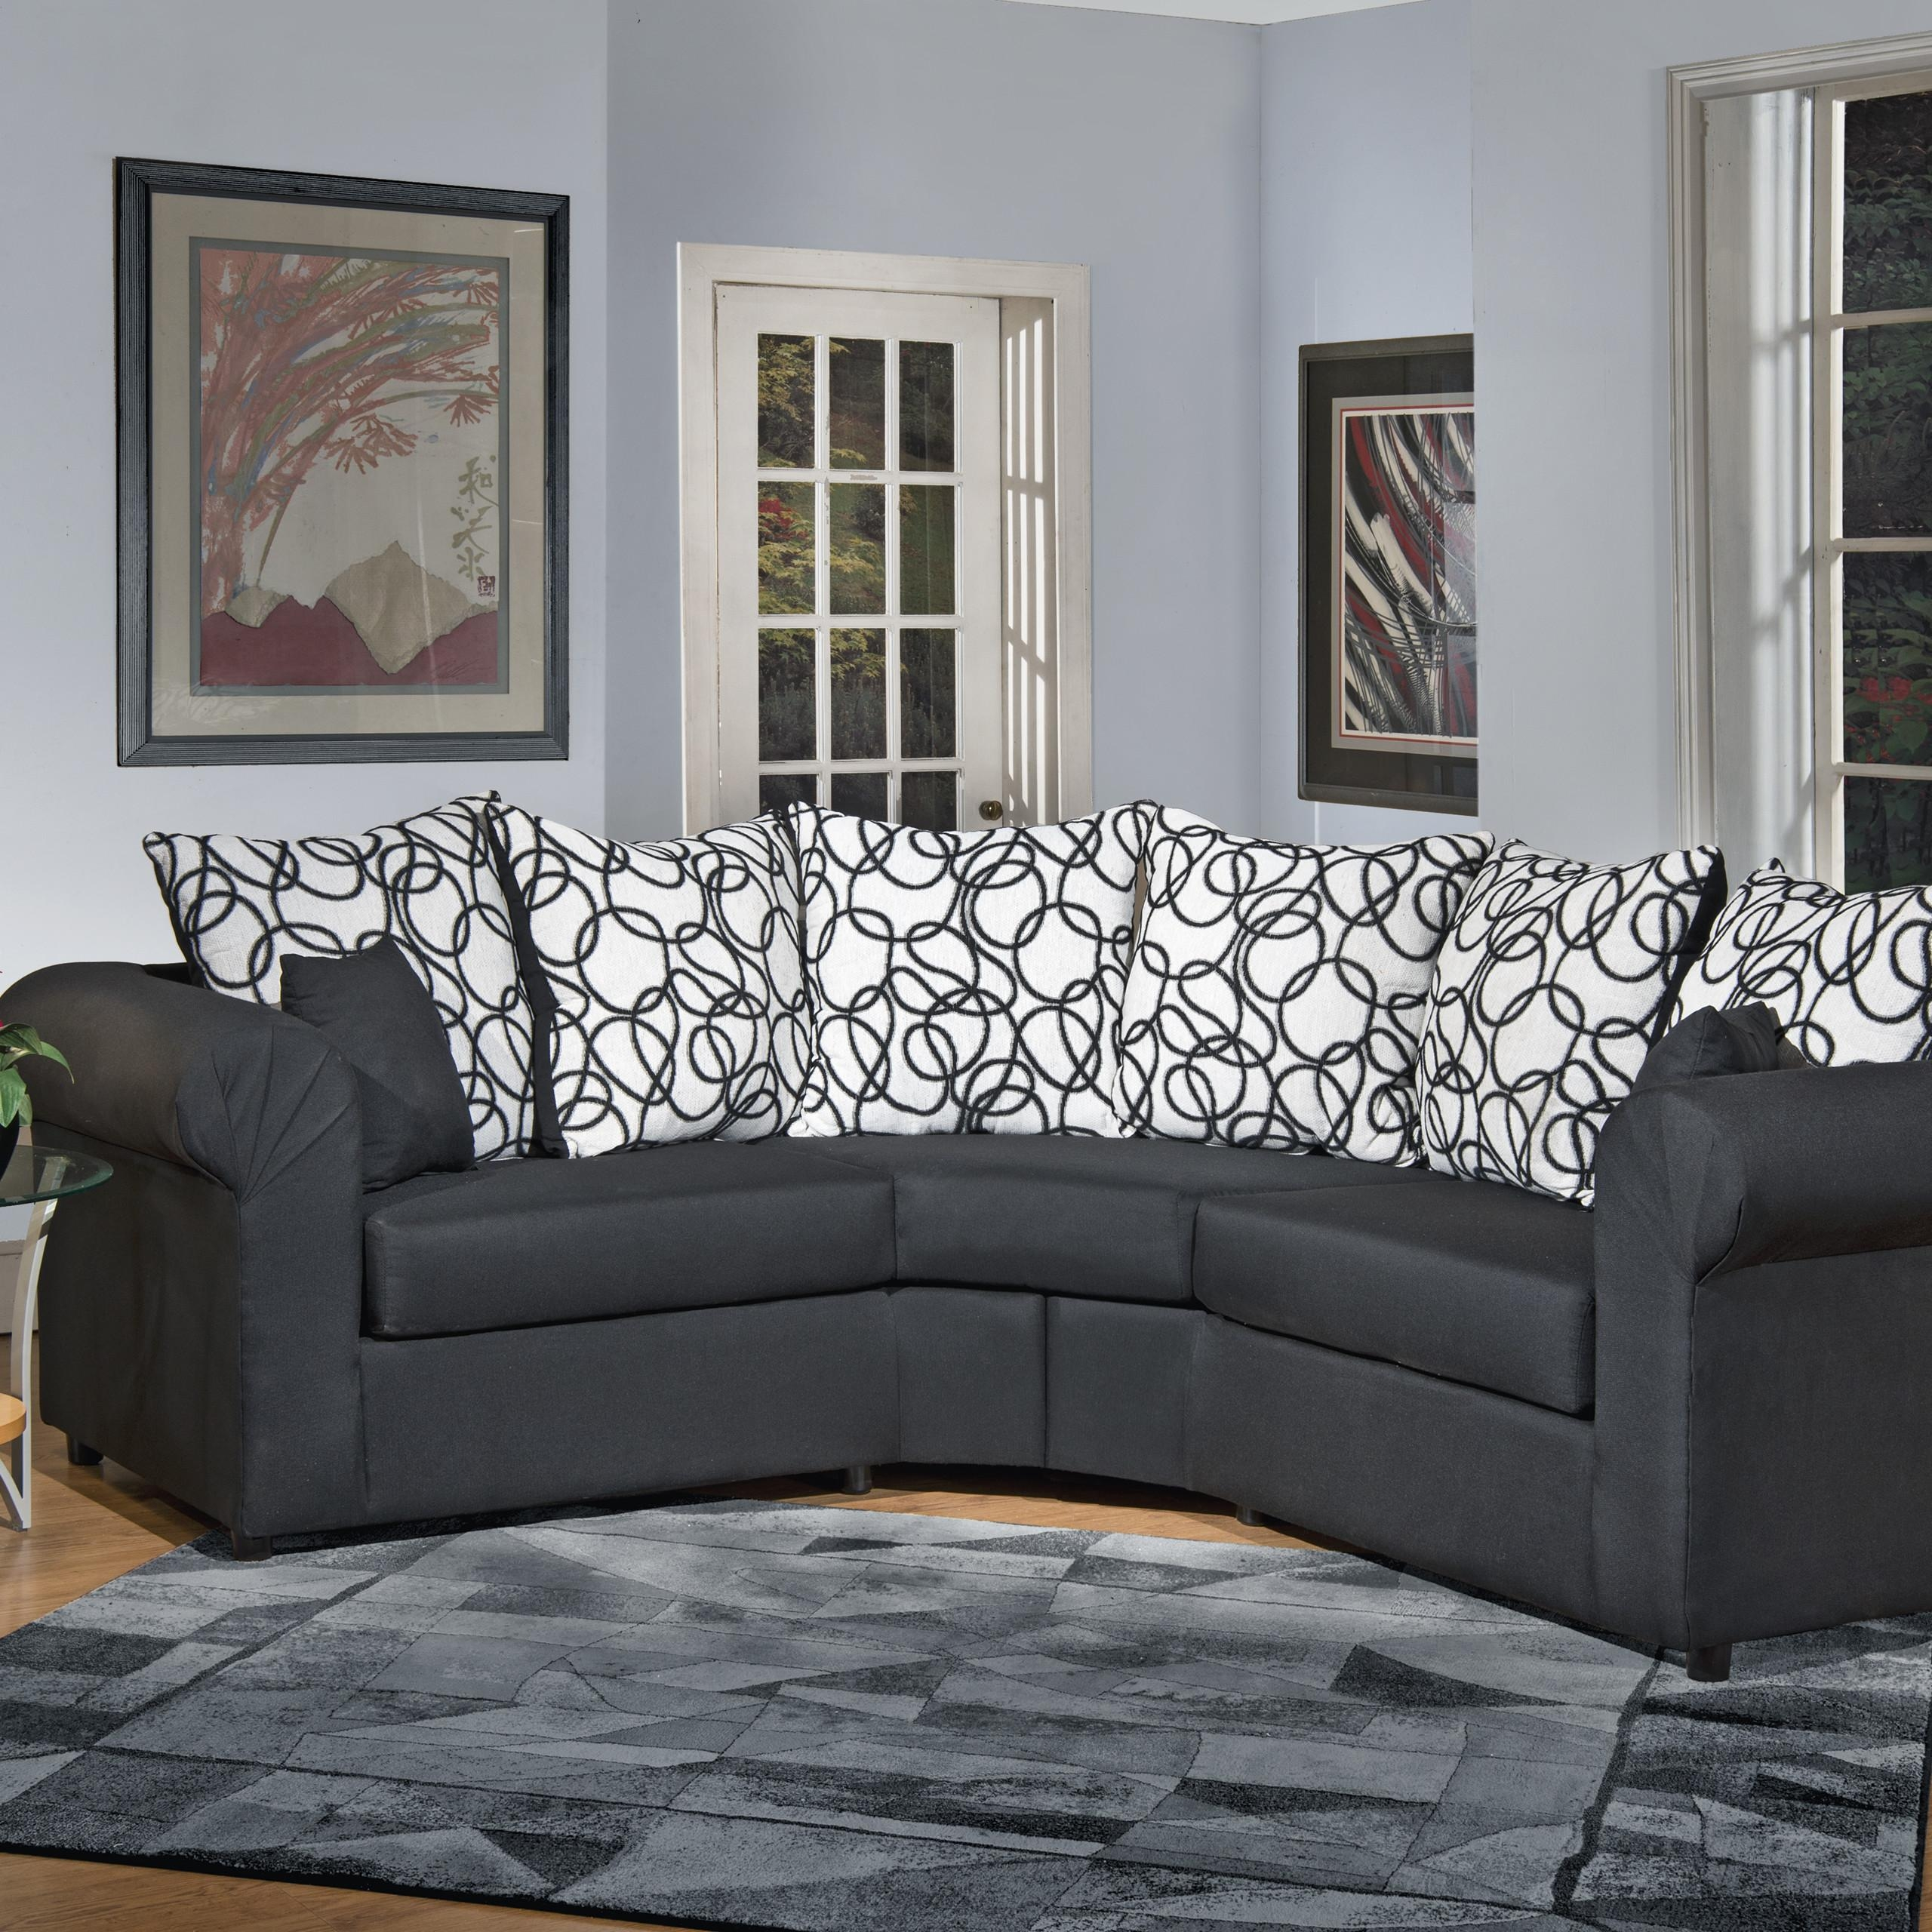 Furniture & Sofa: Perfect Small Spaces Configurable Sectional Sofa Regarding Inexpensive Sectional Sofas For Small Spaces (Image 5 of 20)